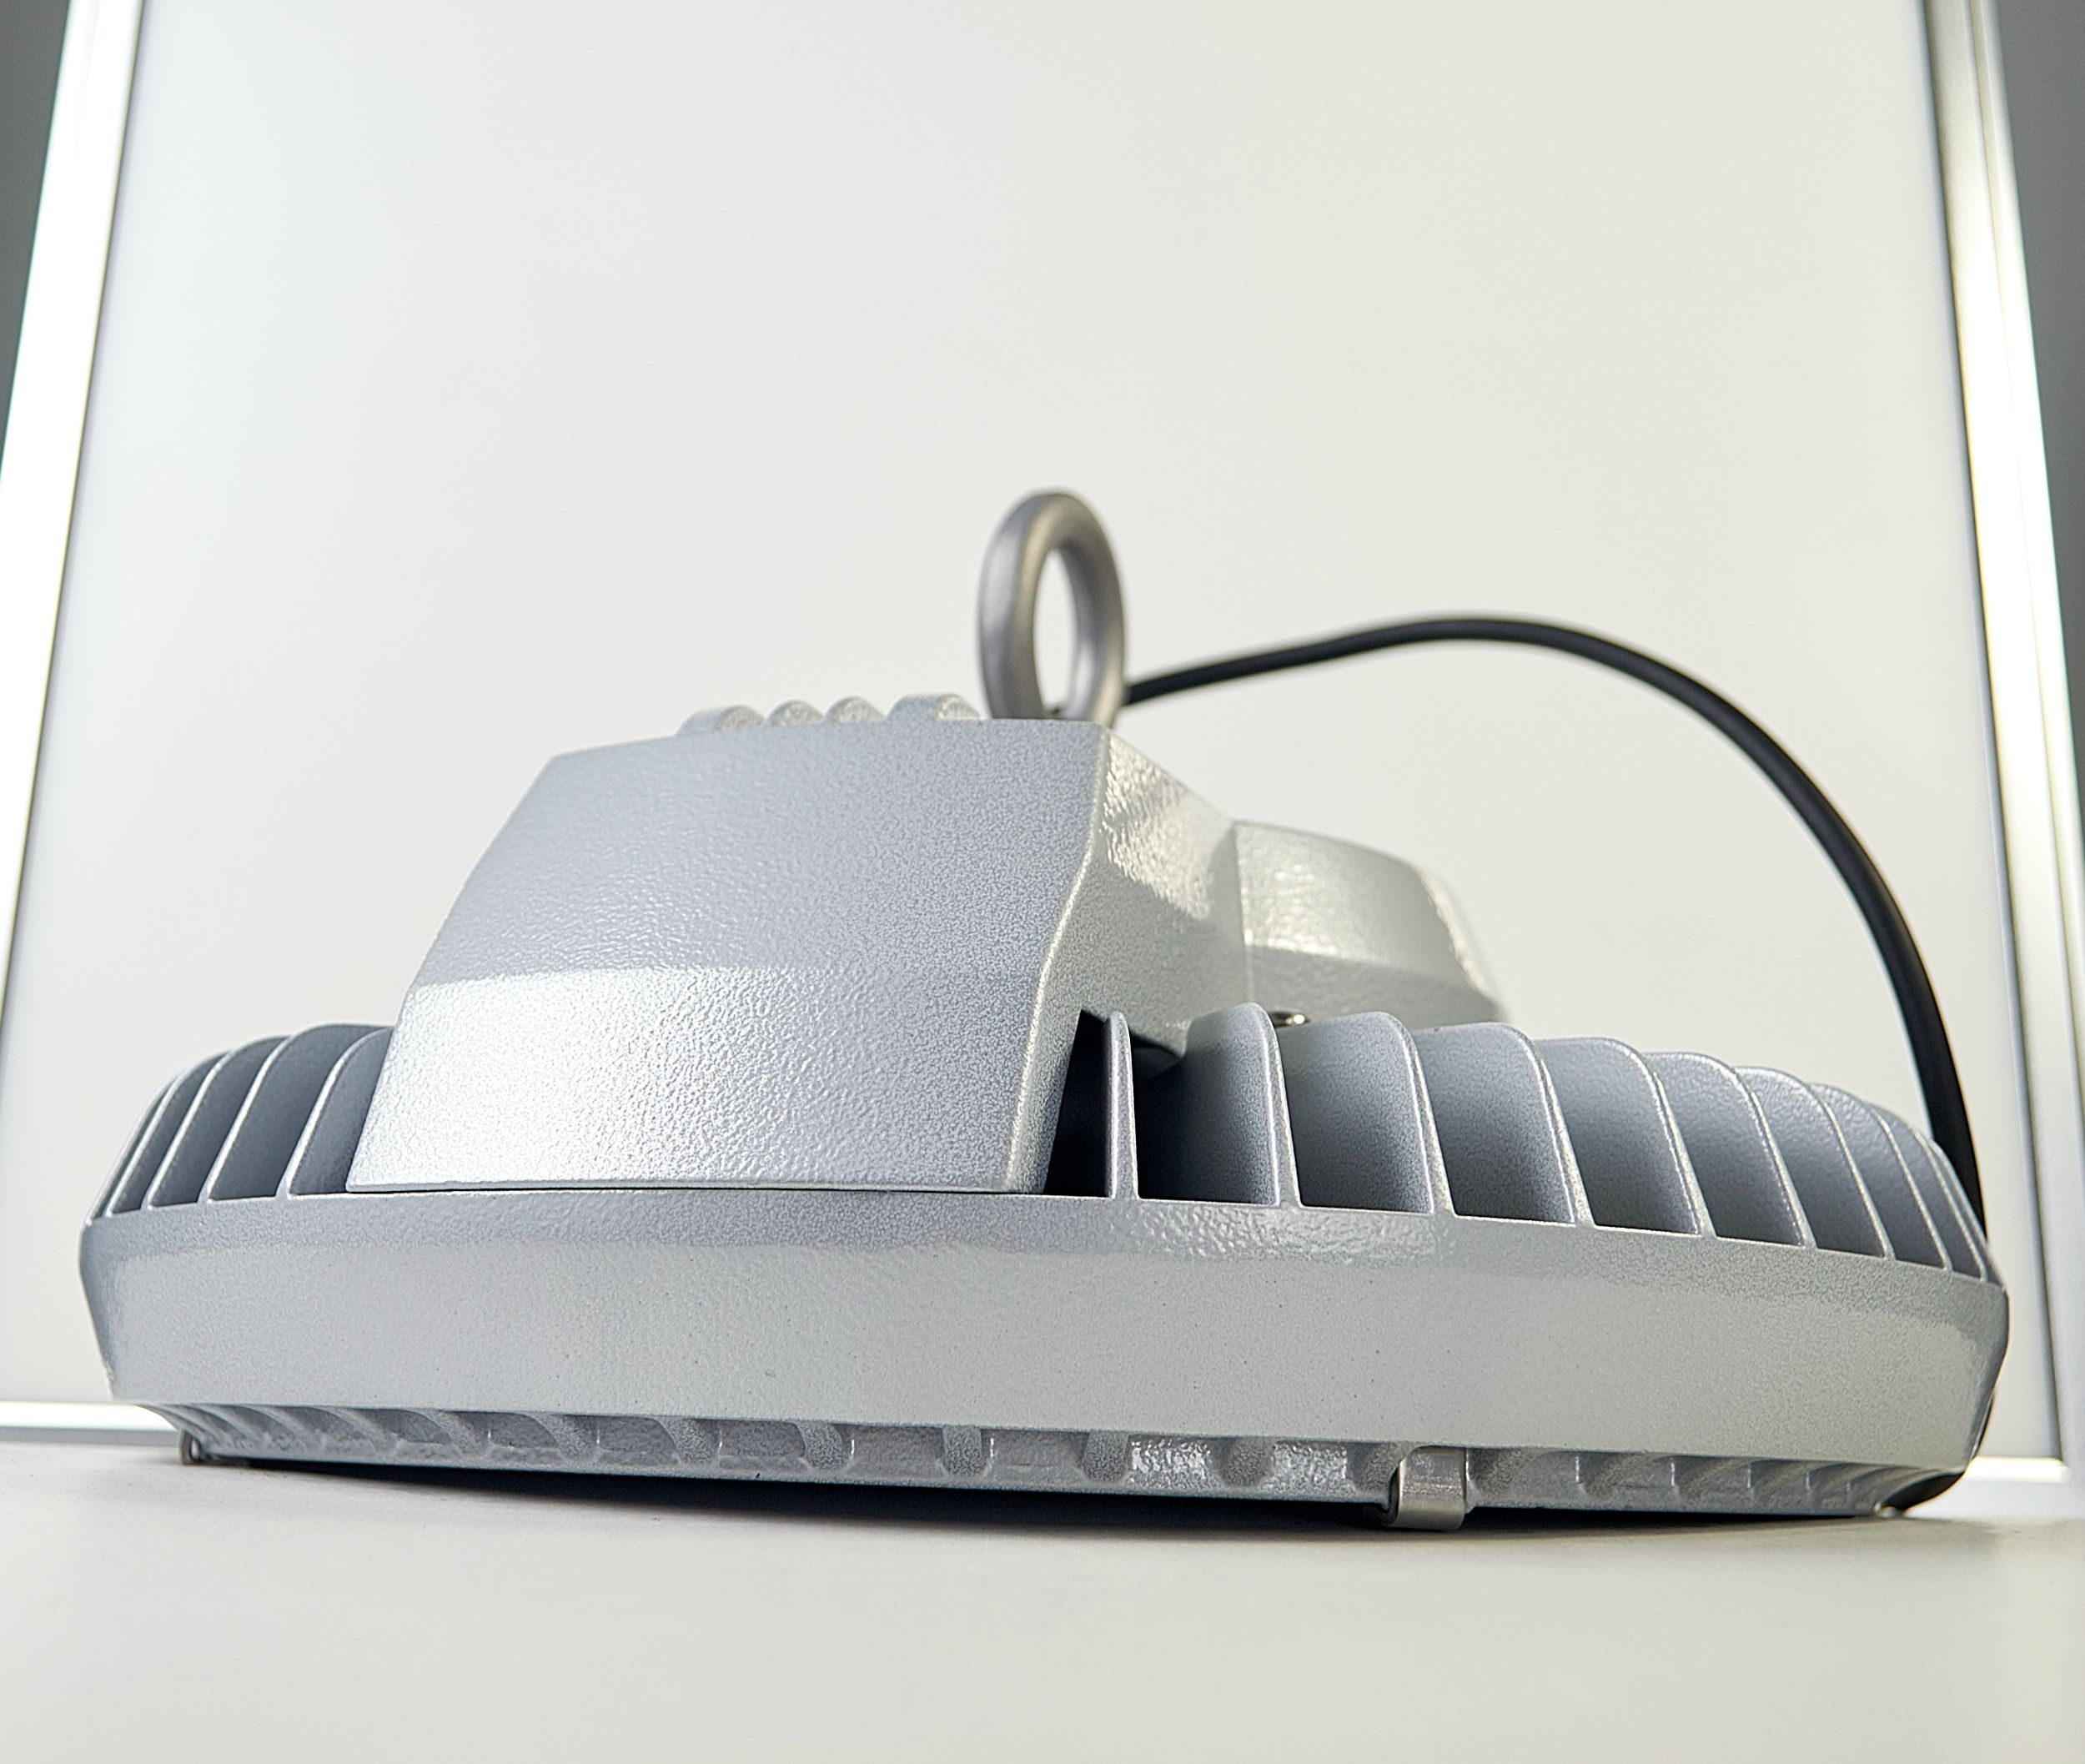 The Sife Face Picture Of Led High Bay Face Pictures Casting Aluminum Aluminium Alloy